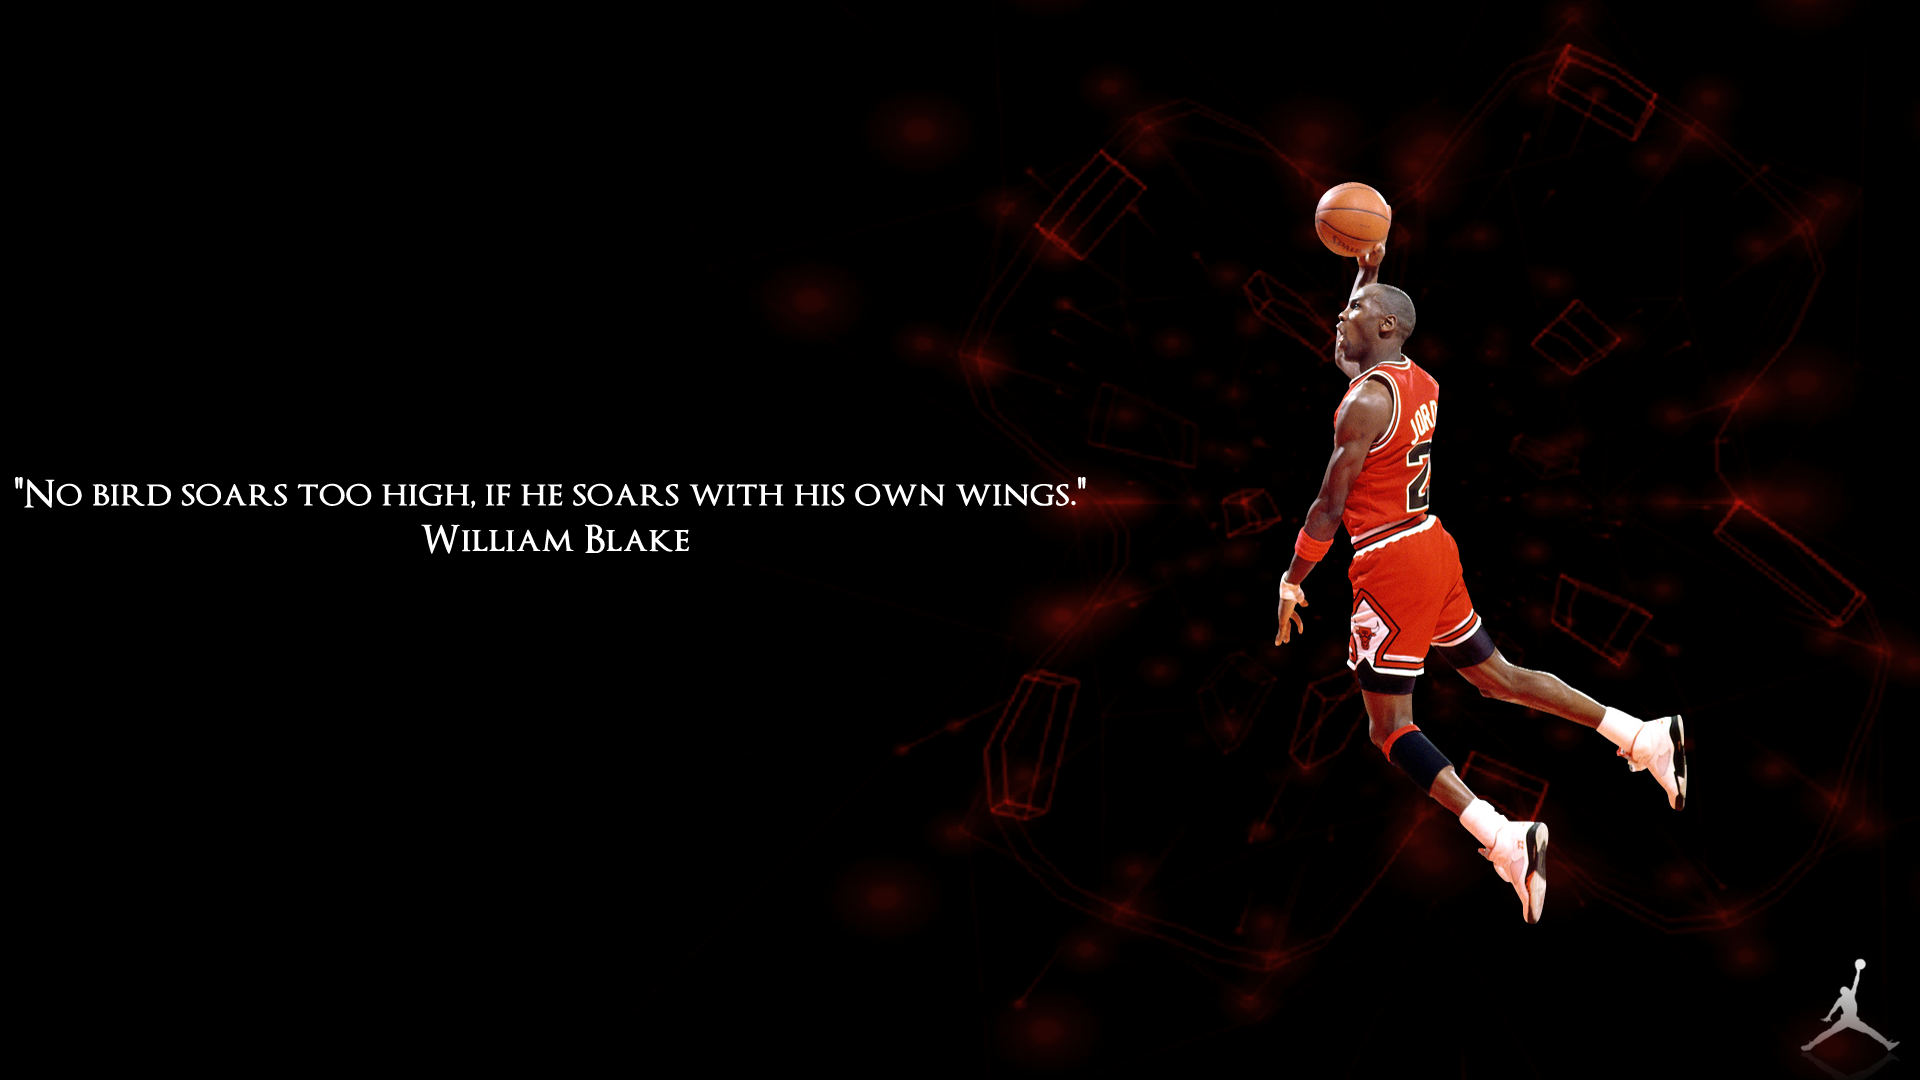 Explore Quotes About Basketball And More